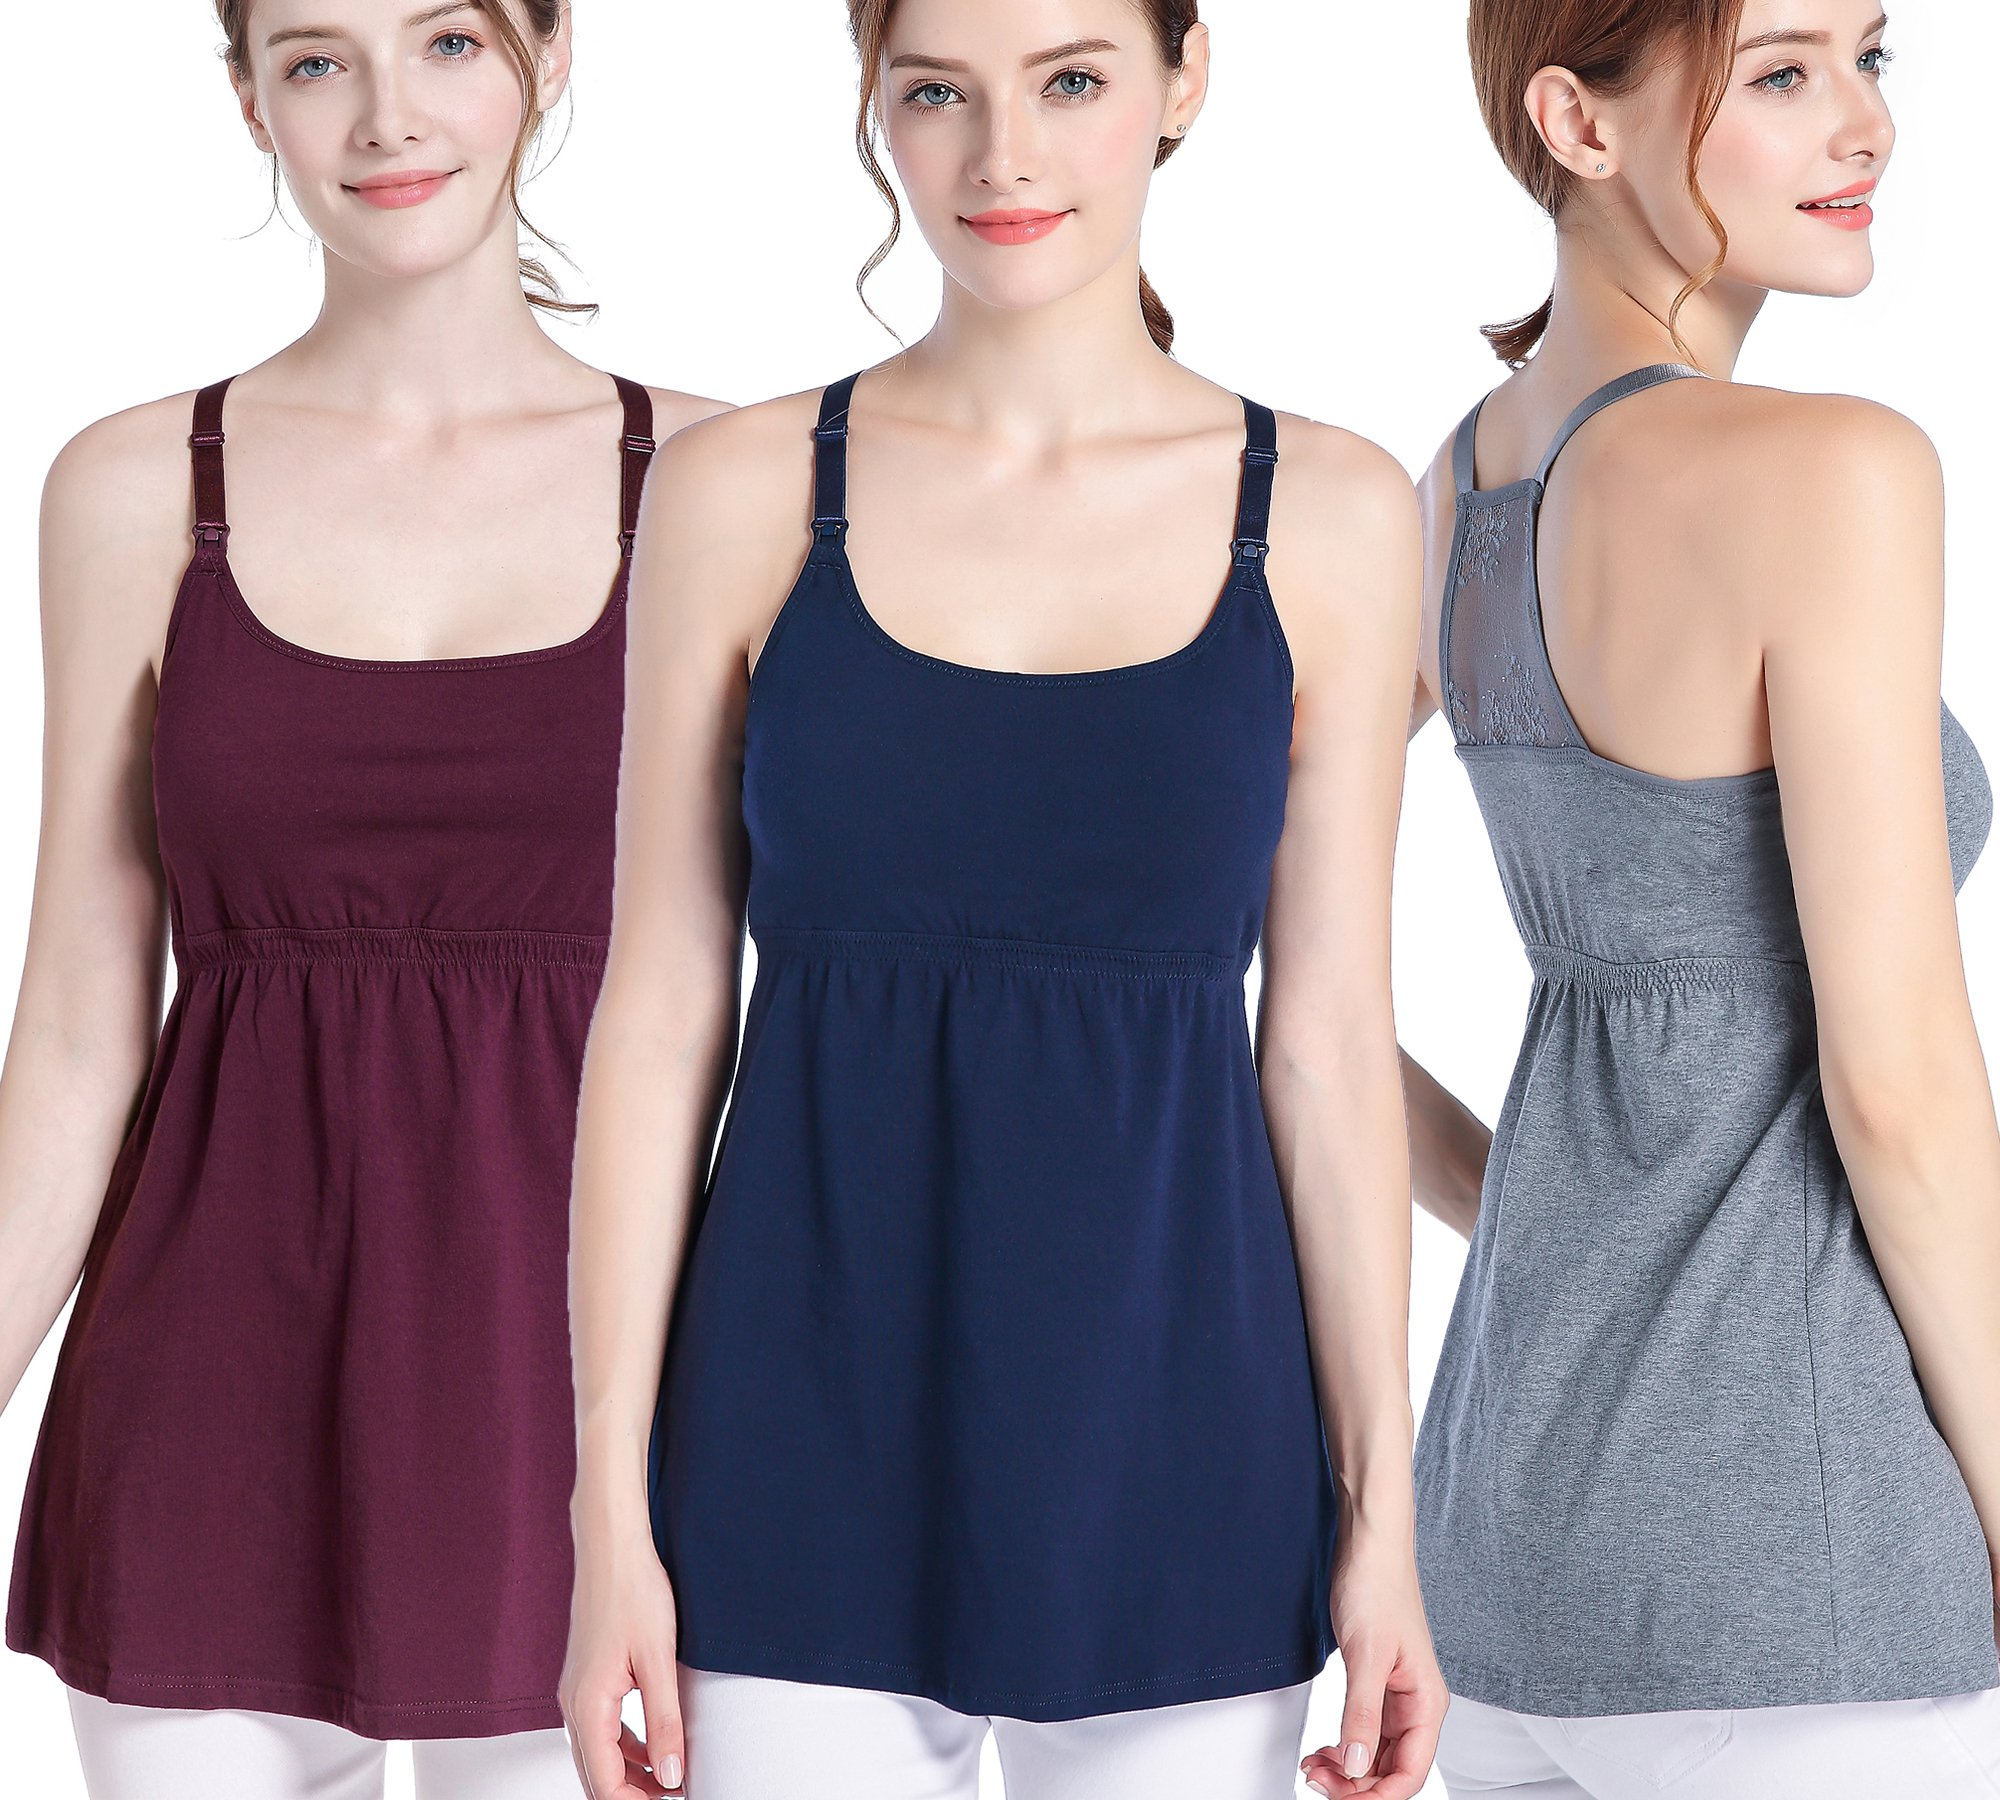 SUIEK 3PACK Nursing Top Tank Cami Maternity Shirt Sleep Bra for Breastfeeding (Medium, Burgundy + Dark Grey + Navy (3/Pack))